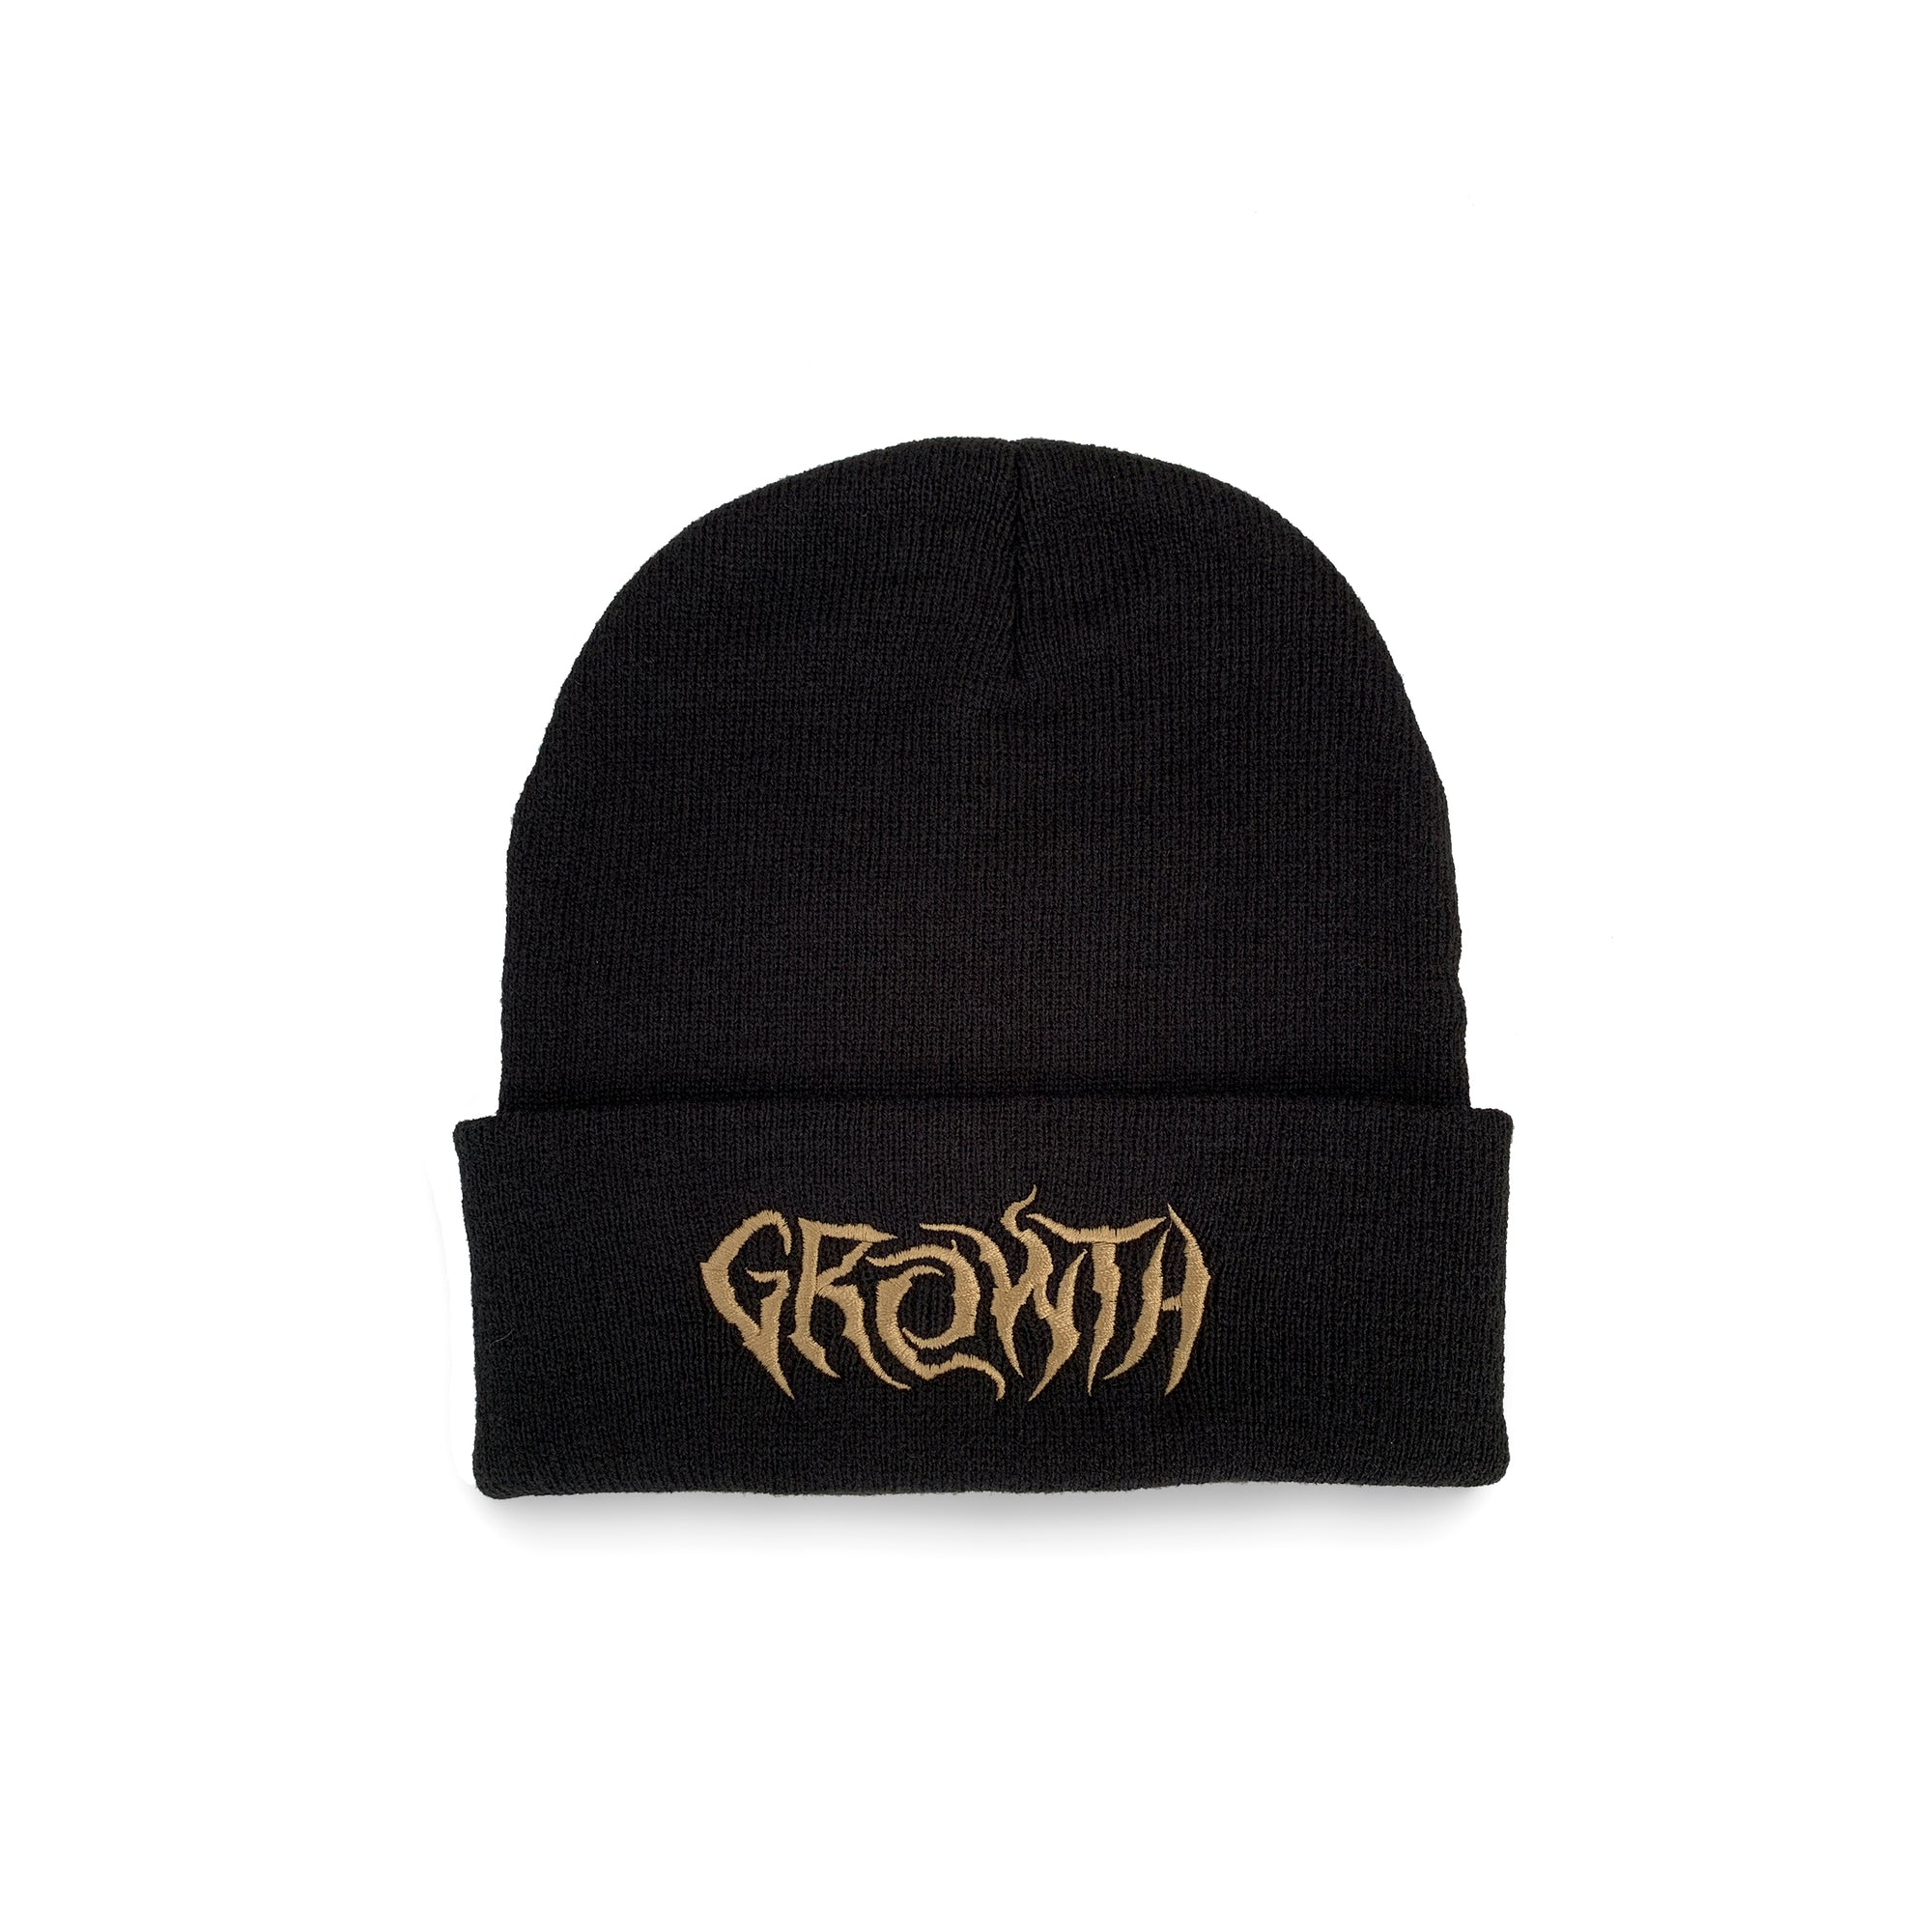 GROWTH // GOLD BEANIE - Wild Thing Records